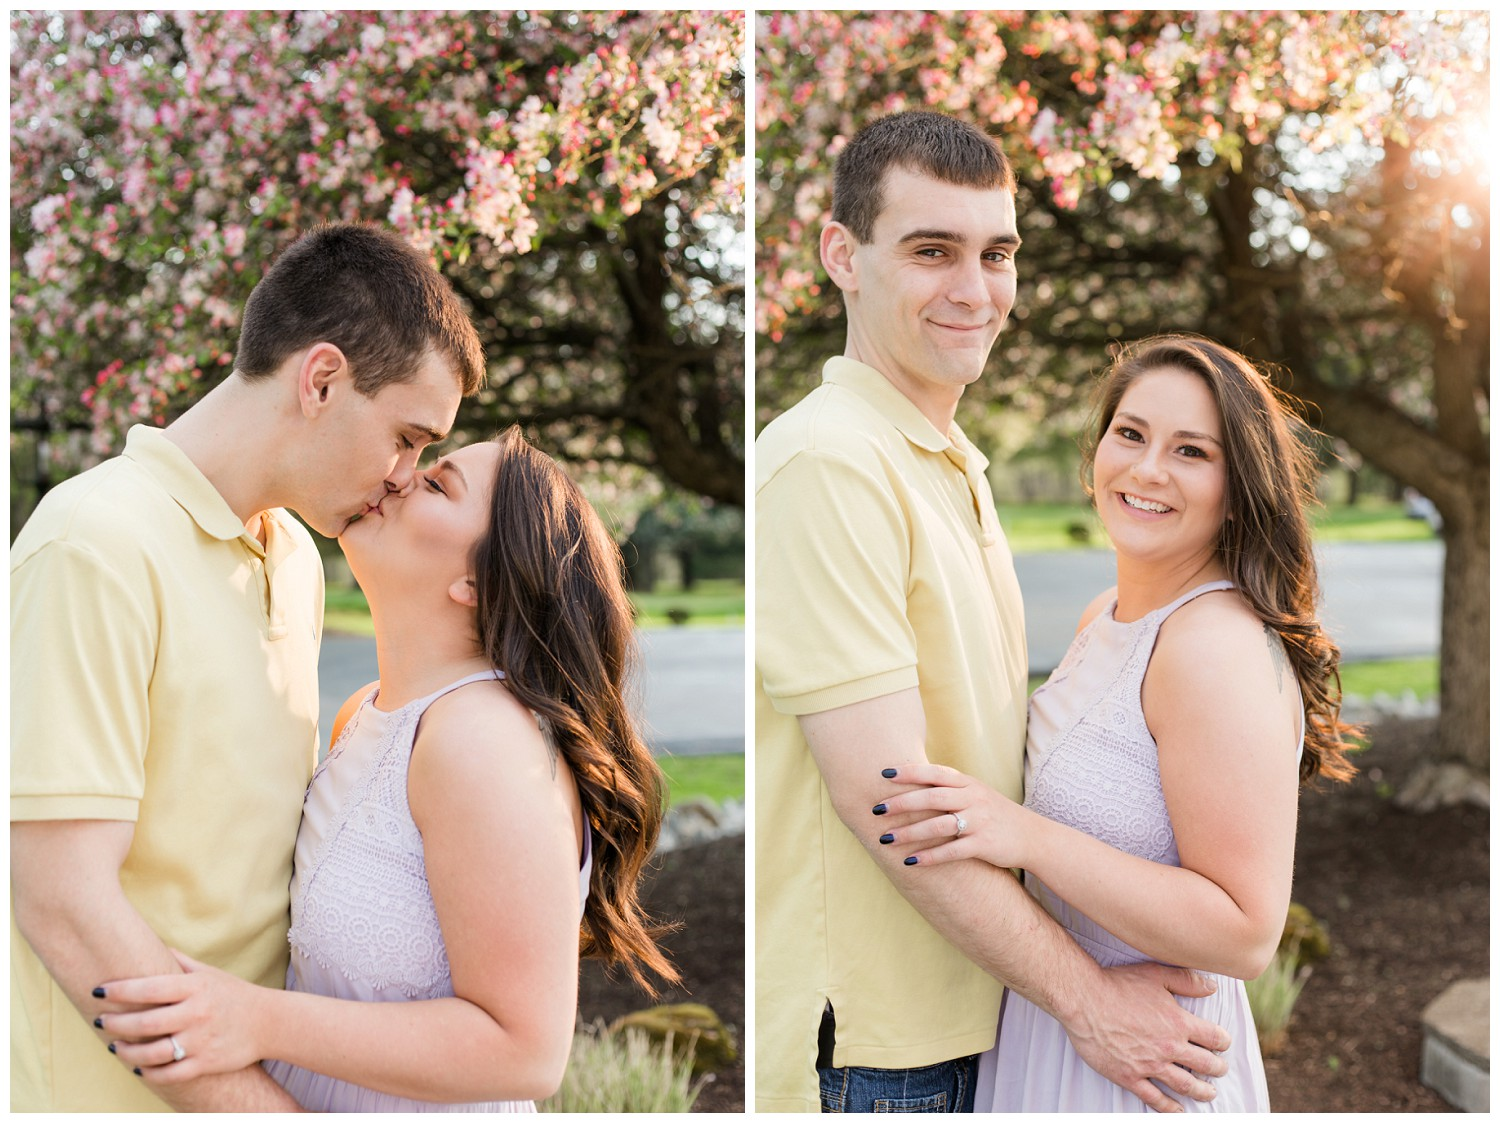 belwood-country-club-engagement-session_0015.jpg